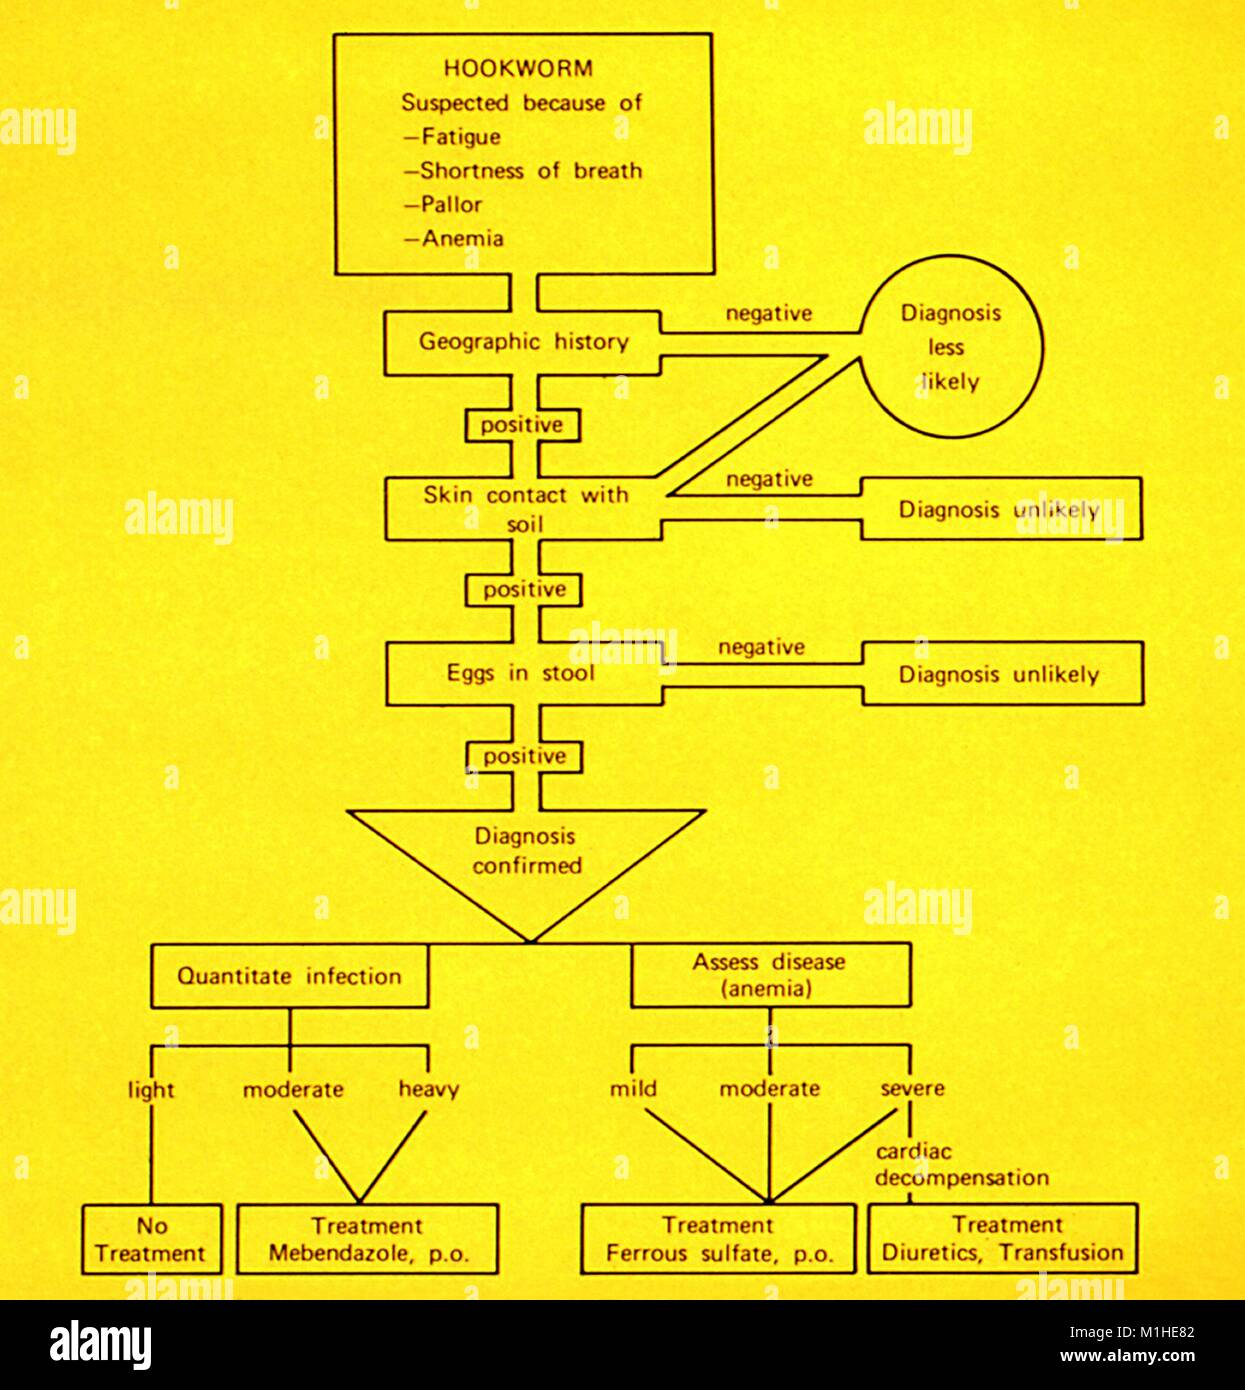 Hookworm infections diagnostic algorithm depicted in the illustrated diagram, 1986. Image courtesy Centers for Disease - Stock Image